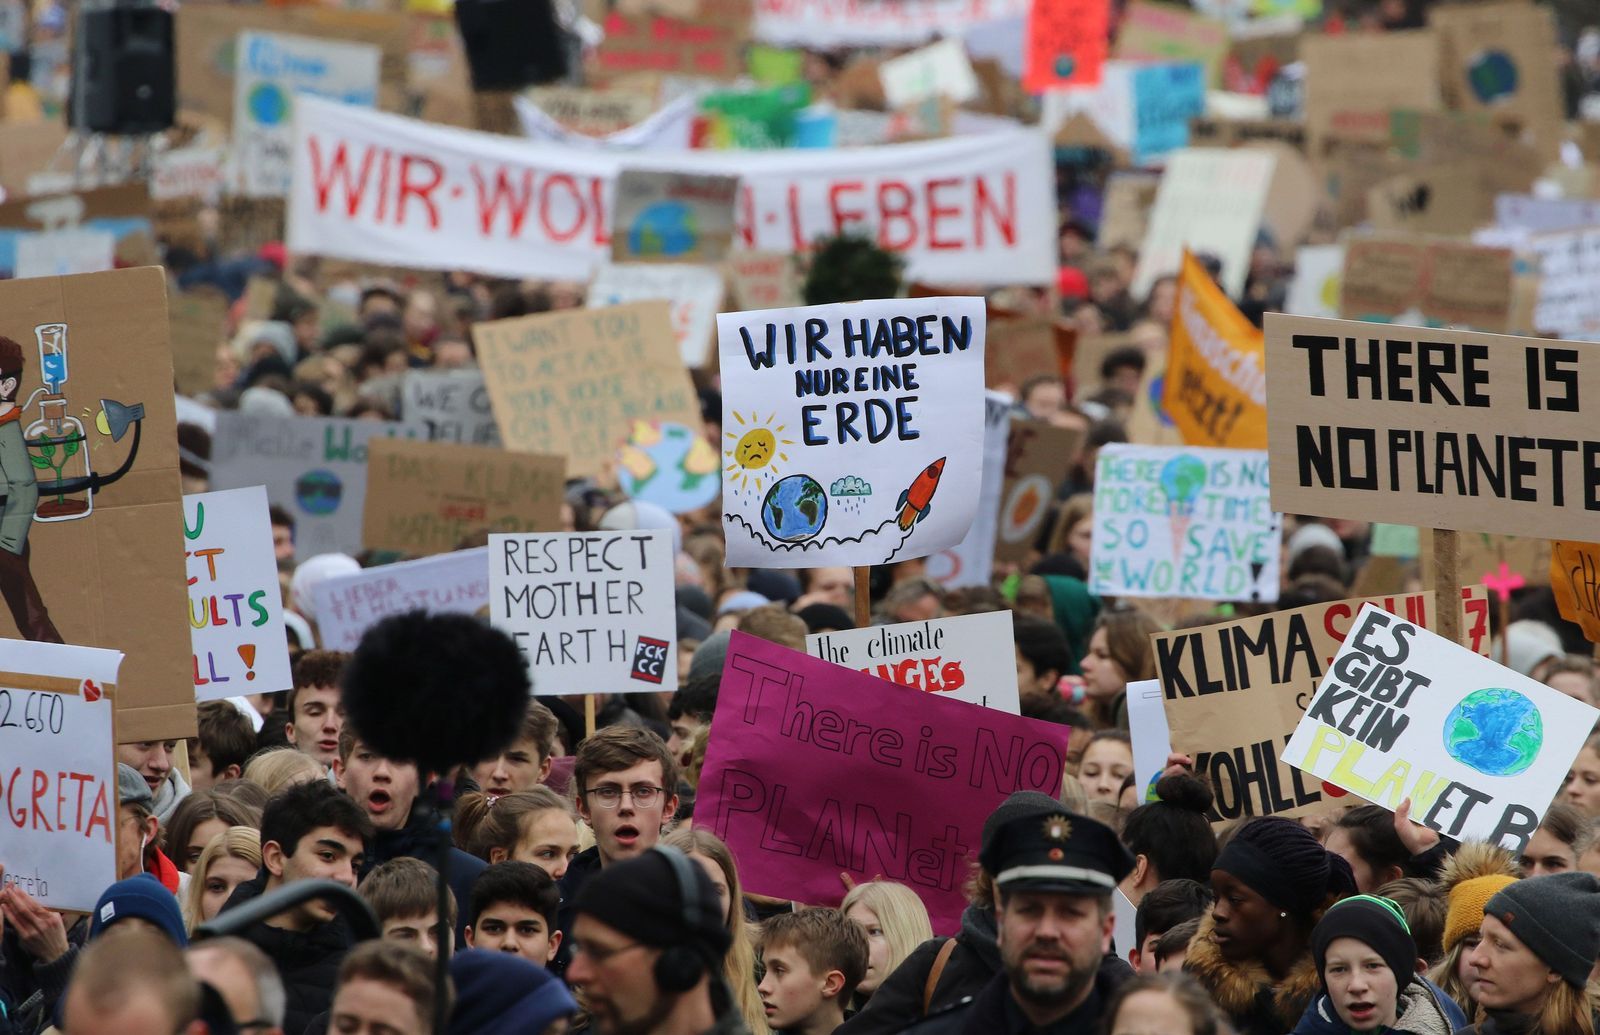 Protest against climate change in Hamburg, Germany - 01 Mar 2019